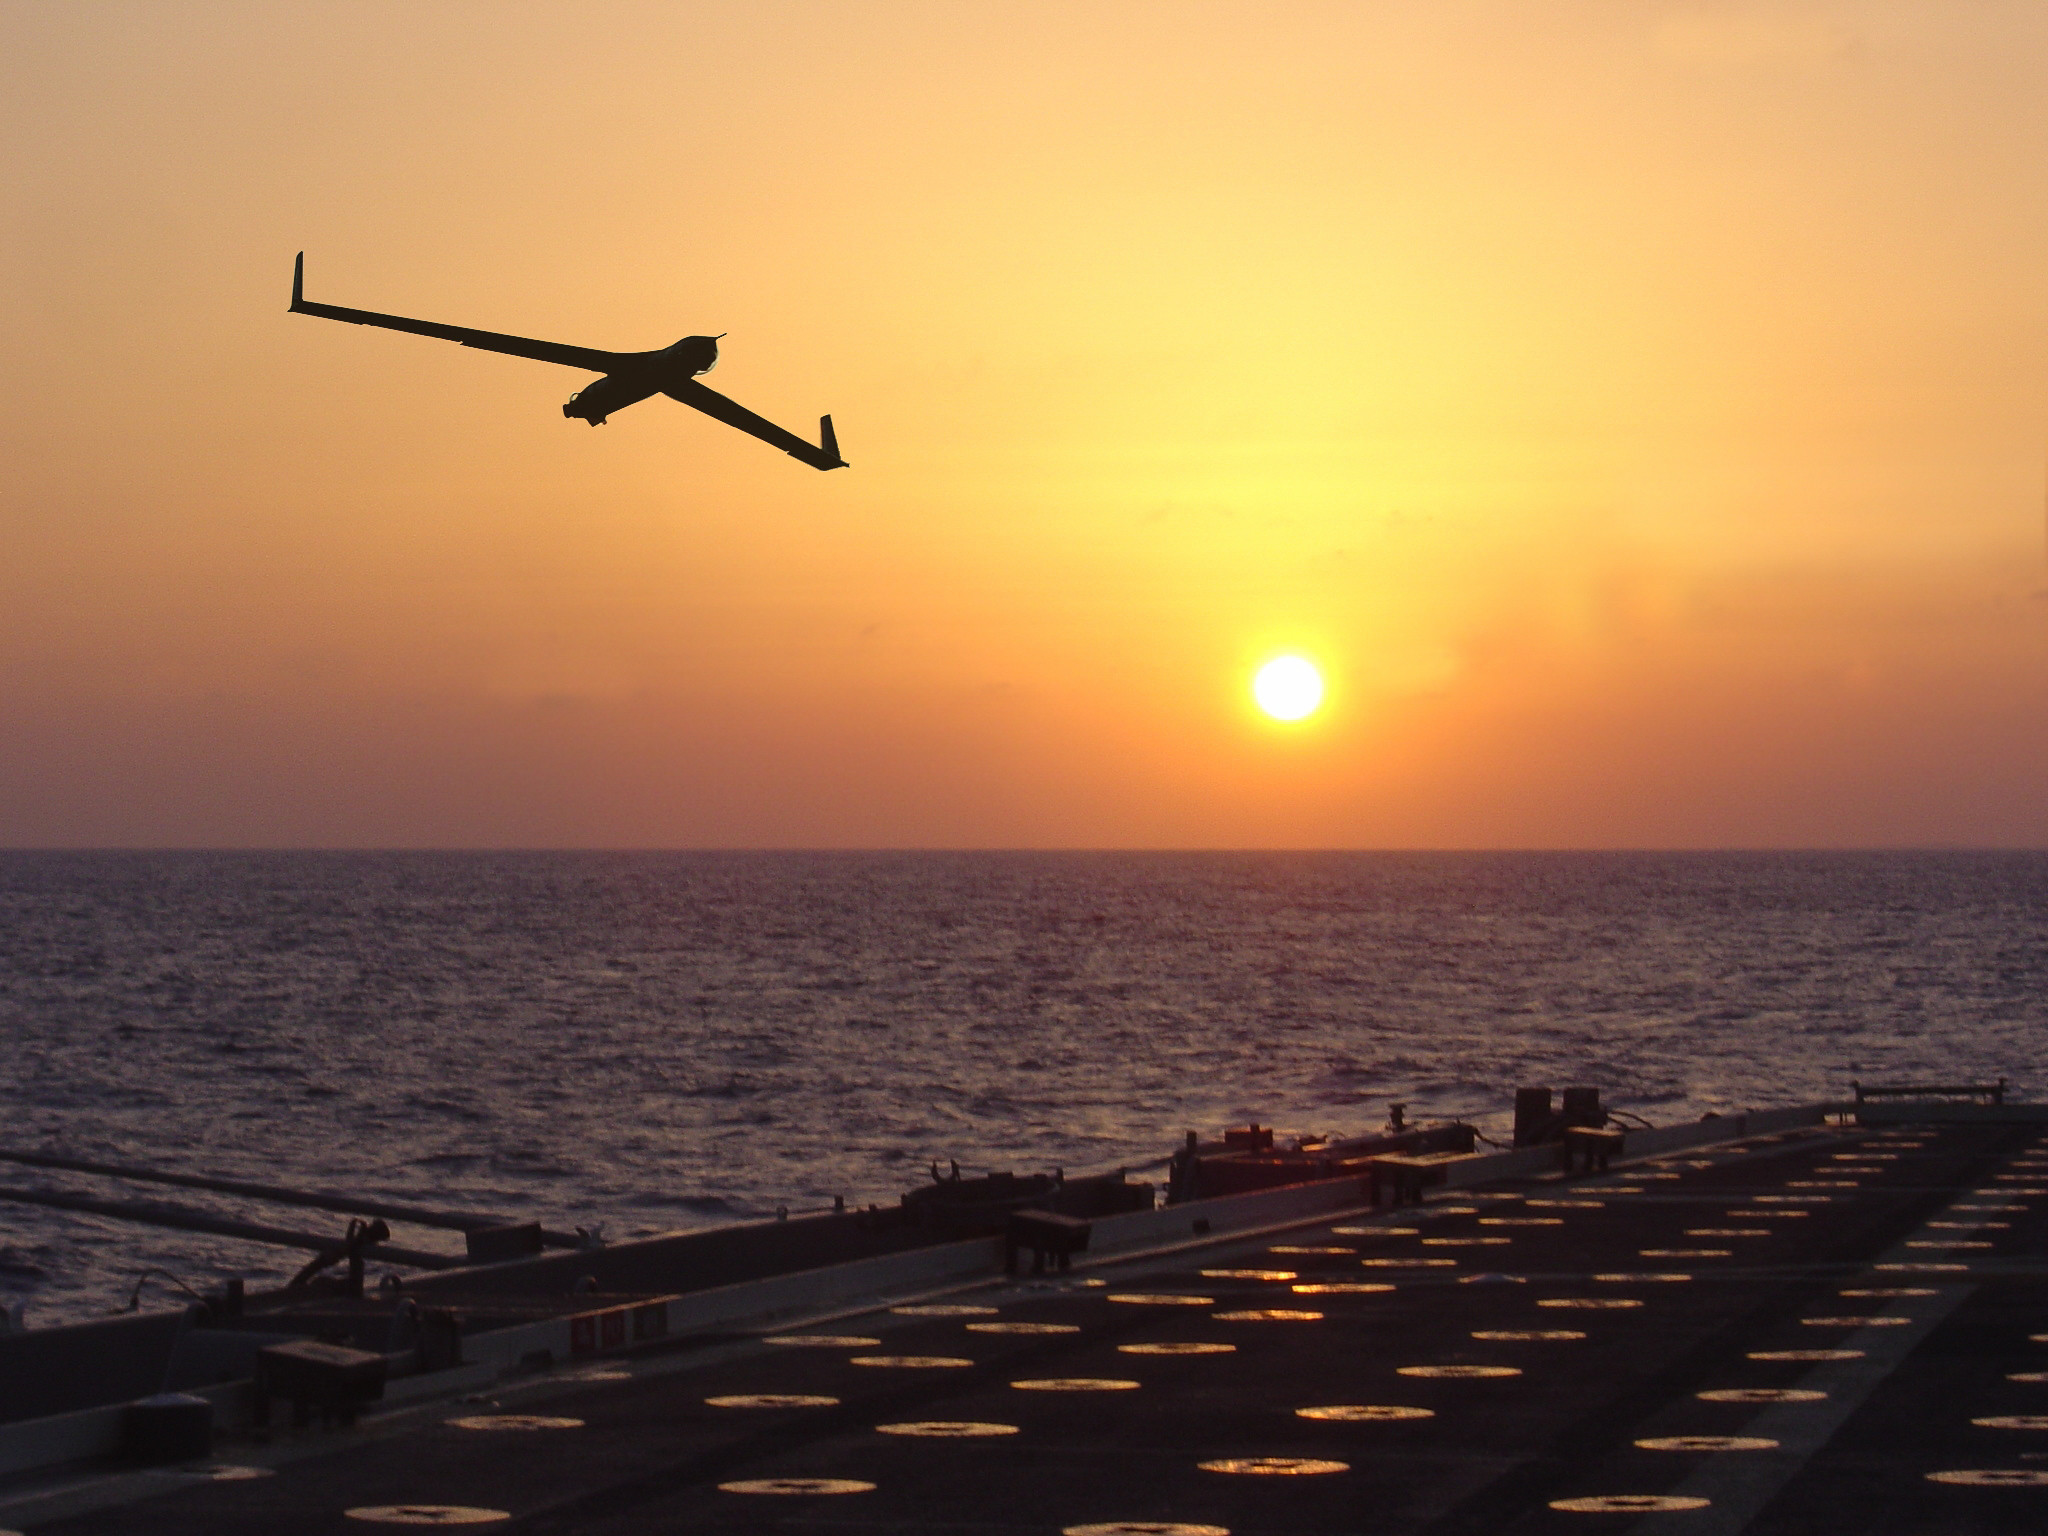 ScanEagle flying over a ship at sea.